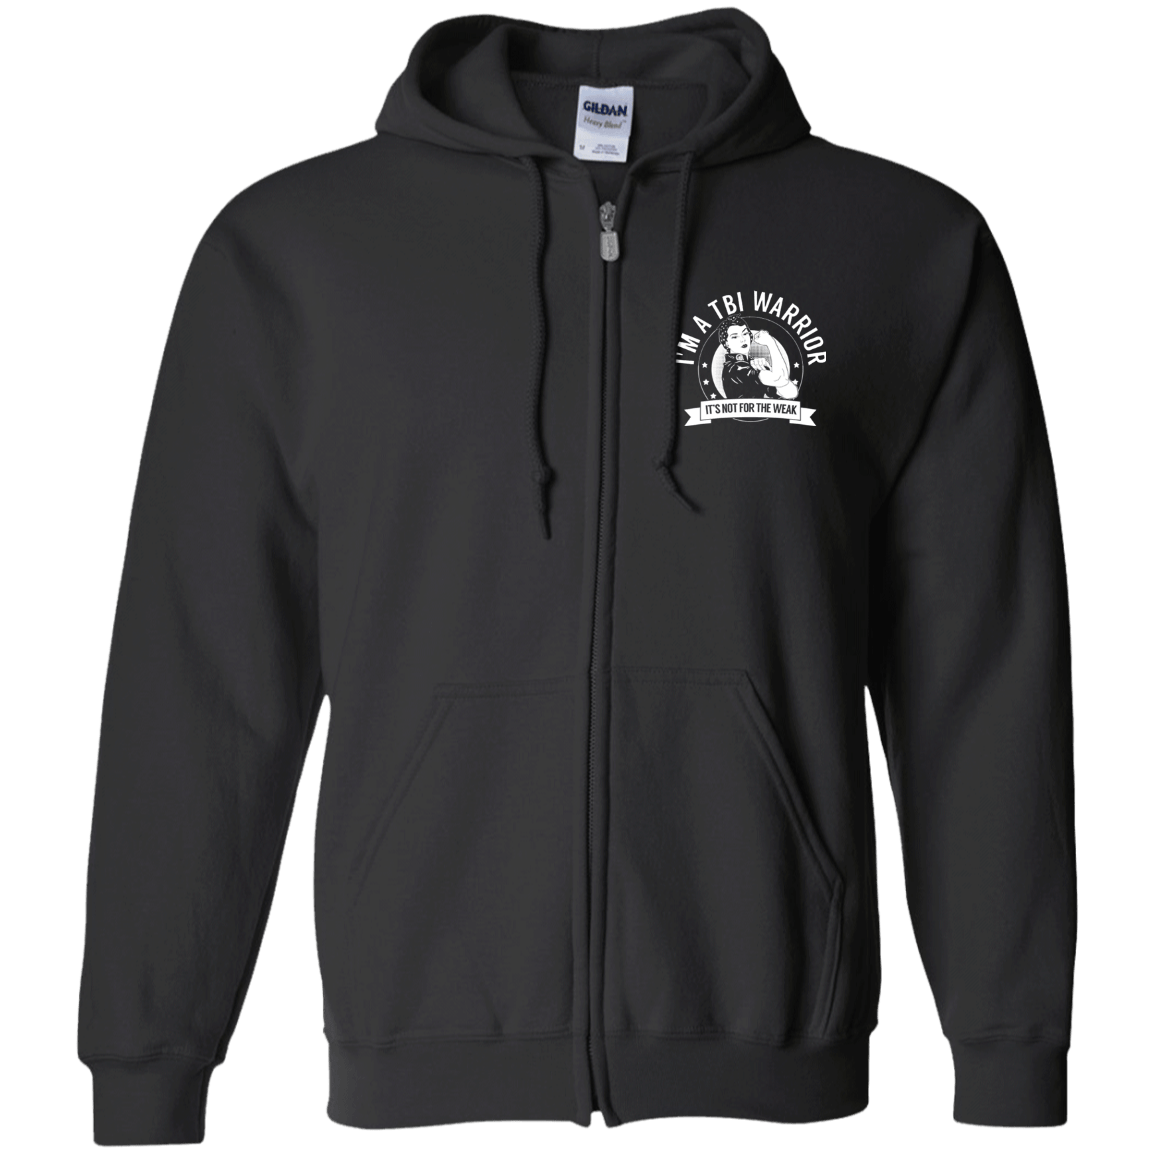 Traumatic Brain Injury - TBI Warrior NFTW Zip Up Hooded Sweatshirt - The Unchargeables